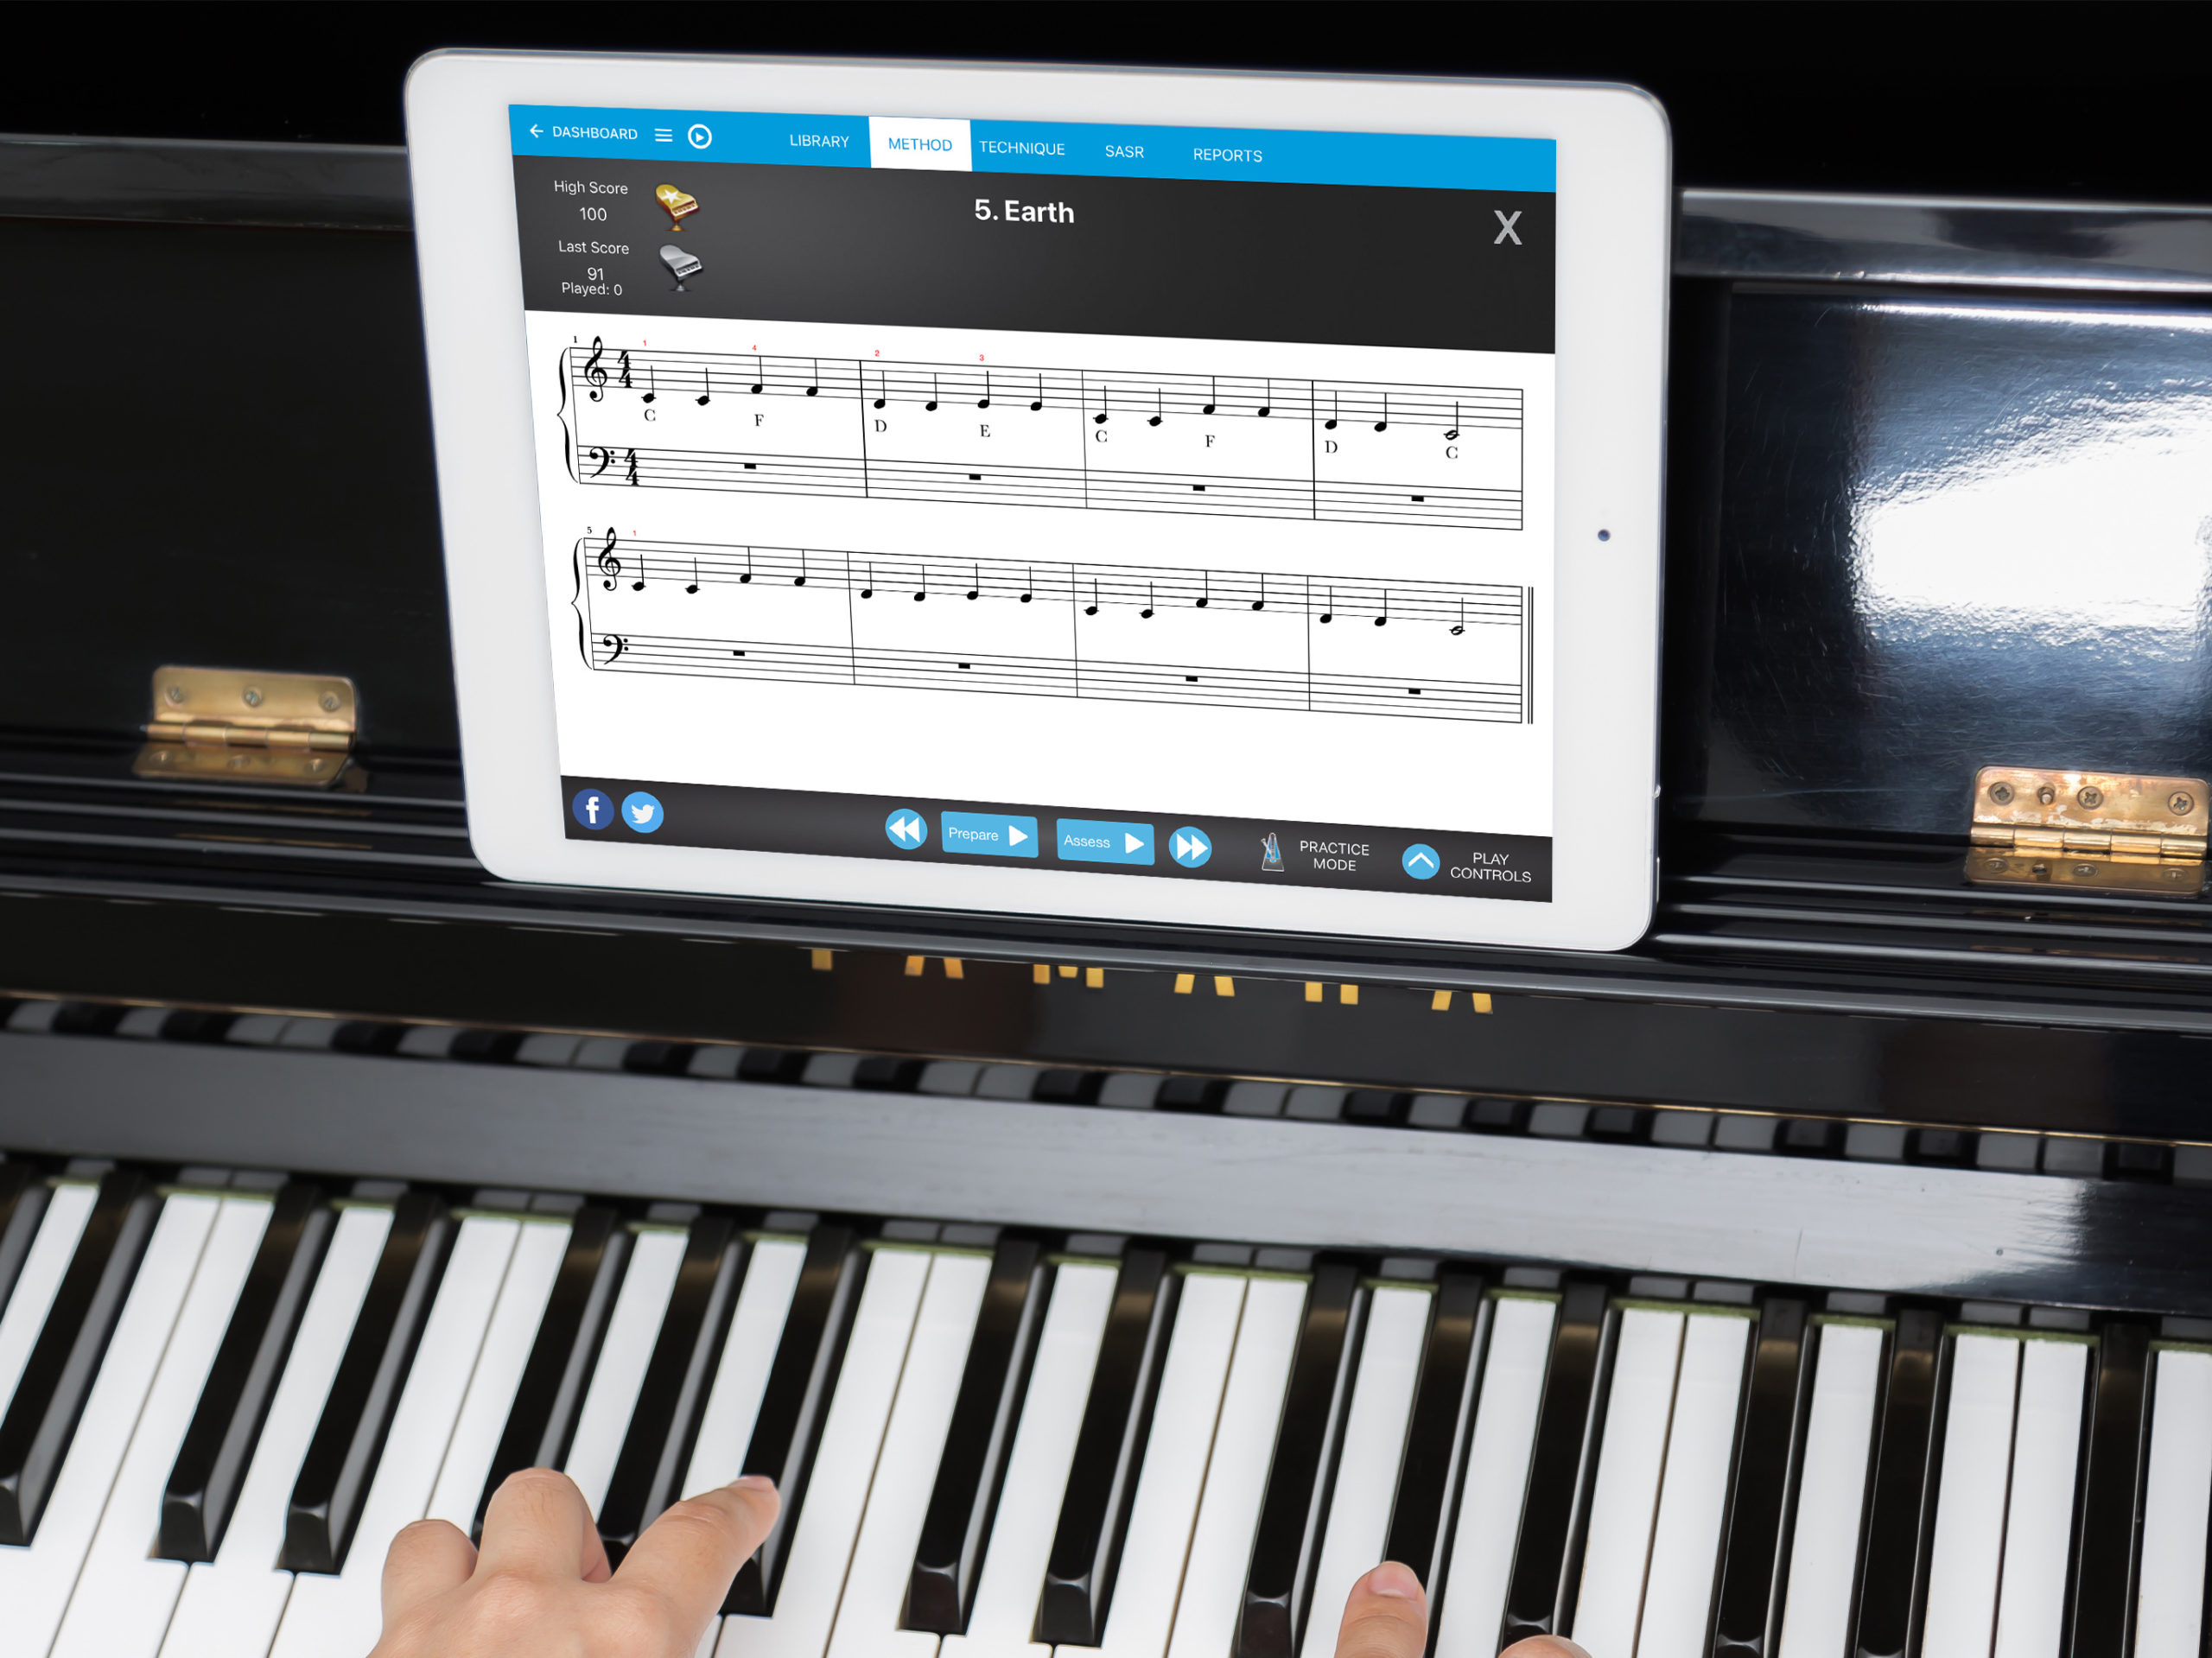 Piano Marvel being used on an iPad